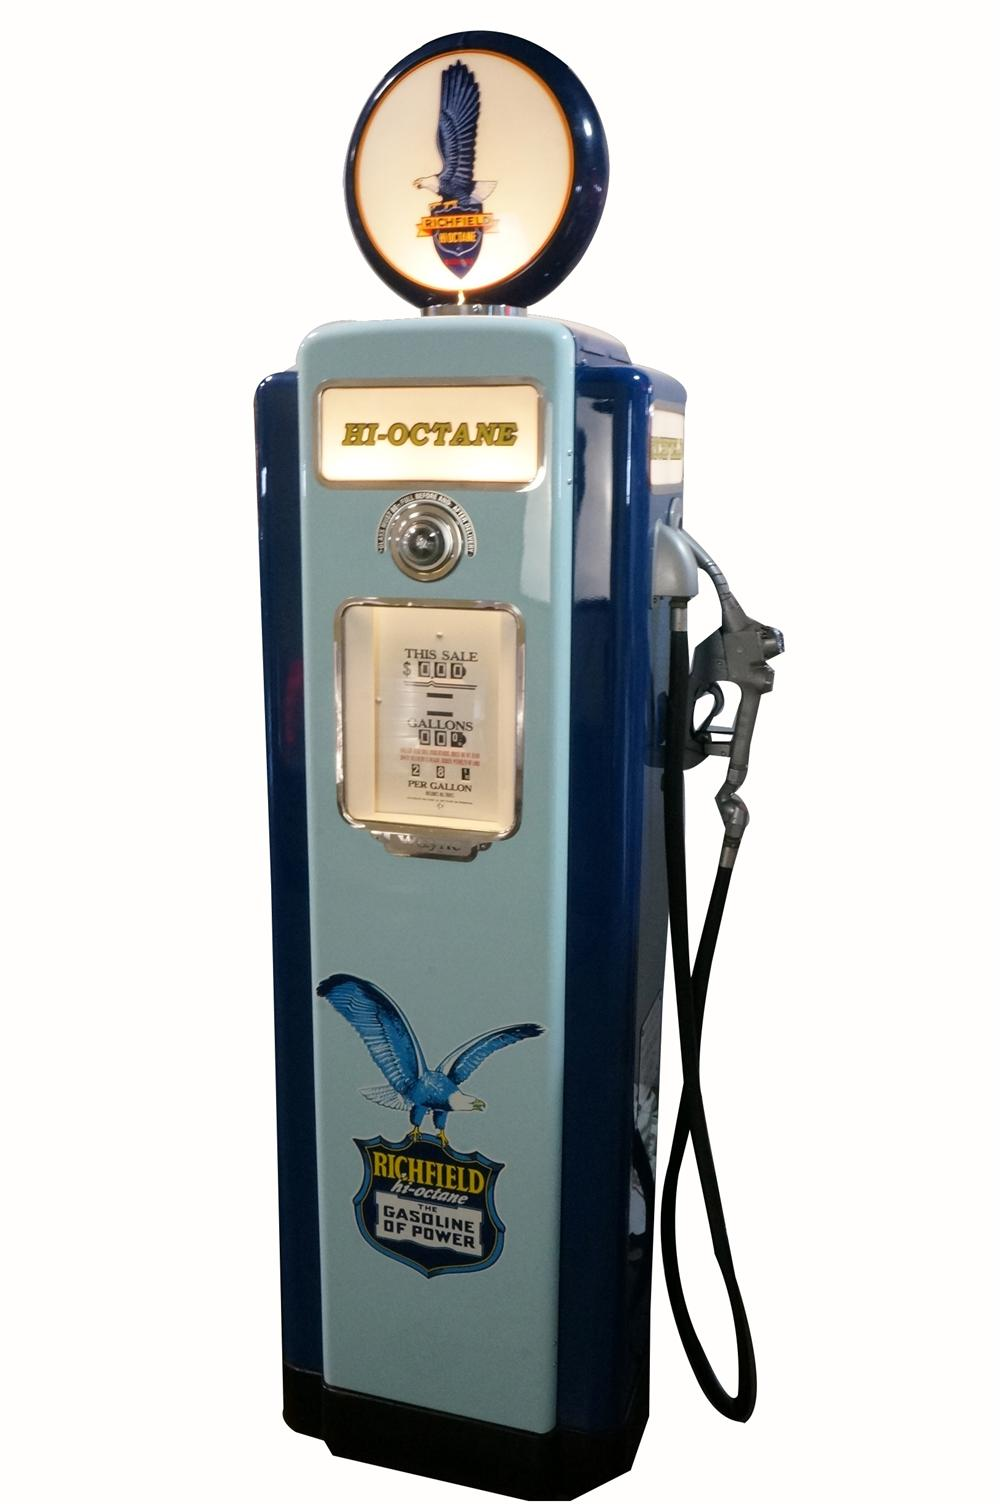 Late 1940's Richfield Hi-Octane Gasoline Wayne model #70 restored service station gas pump with lighted-ad panels. - Front 3/4 - 162769